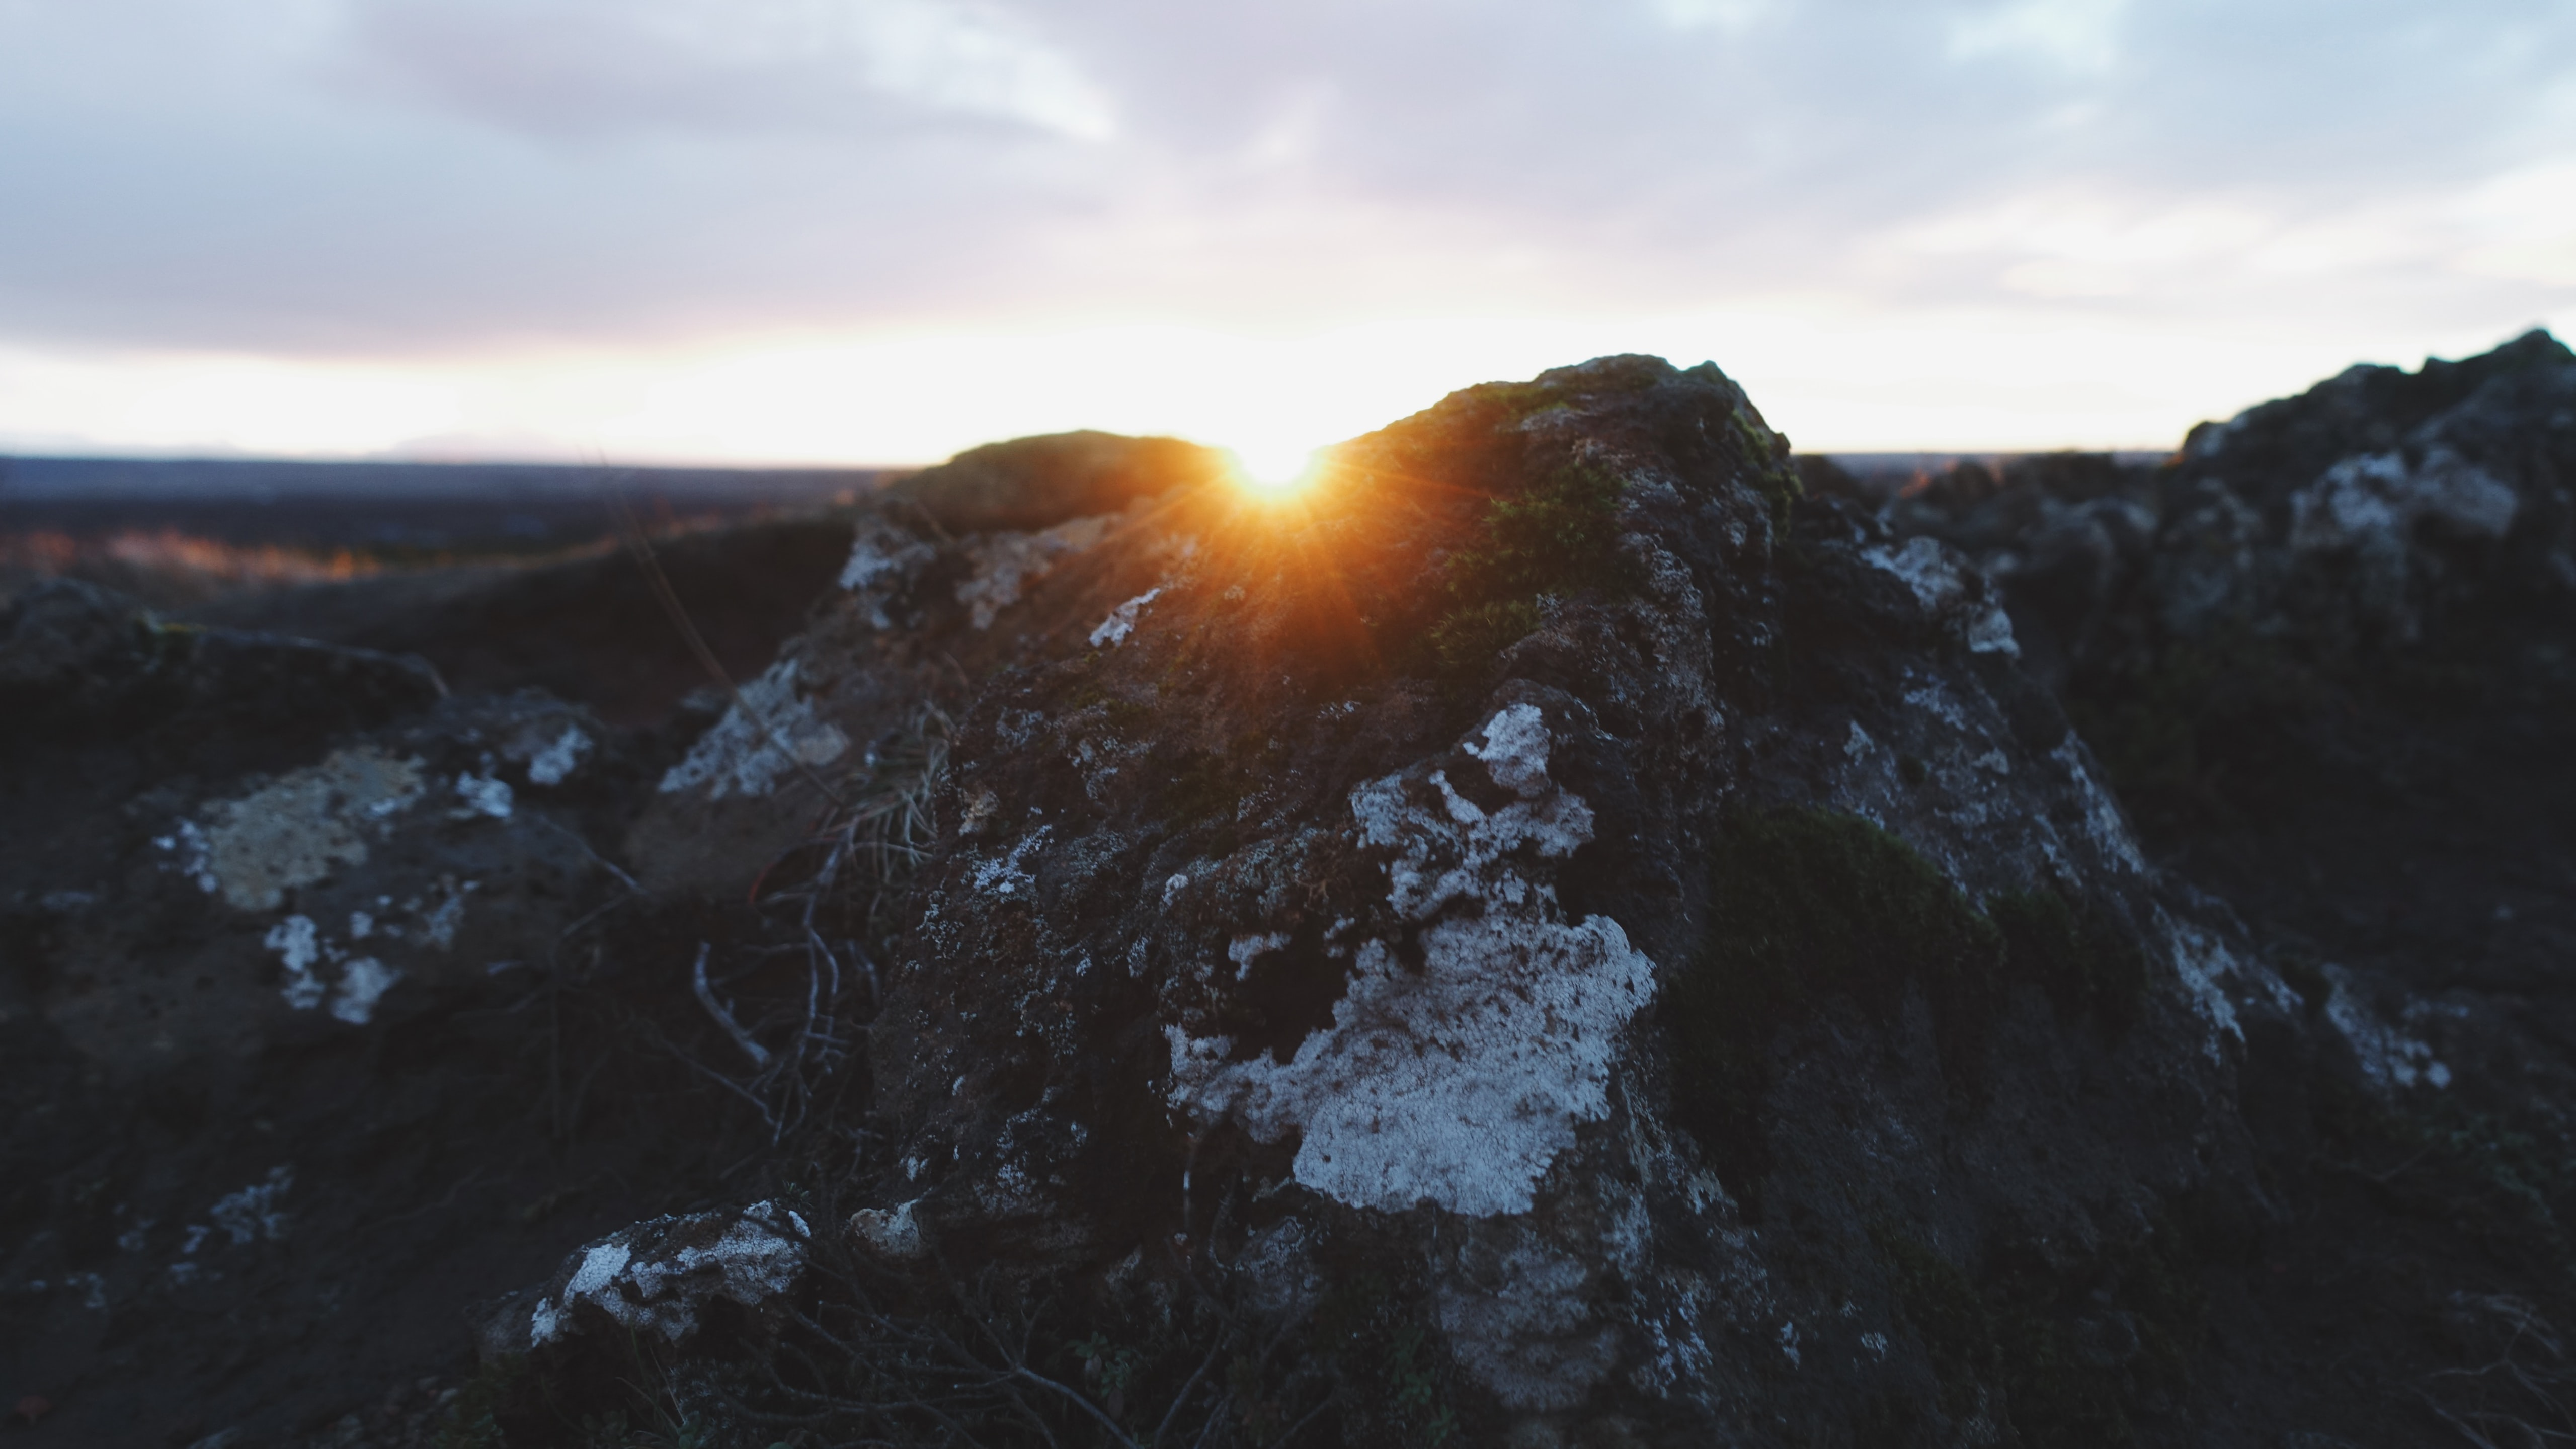 Snow sits on mountains as the sun sets below the peak at Kerið.